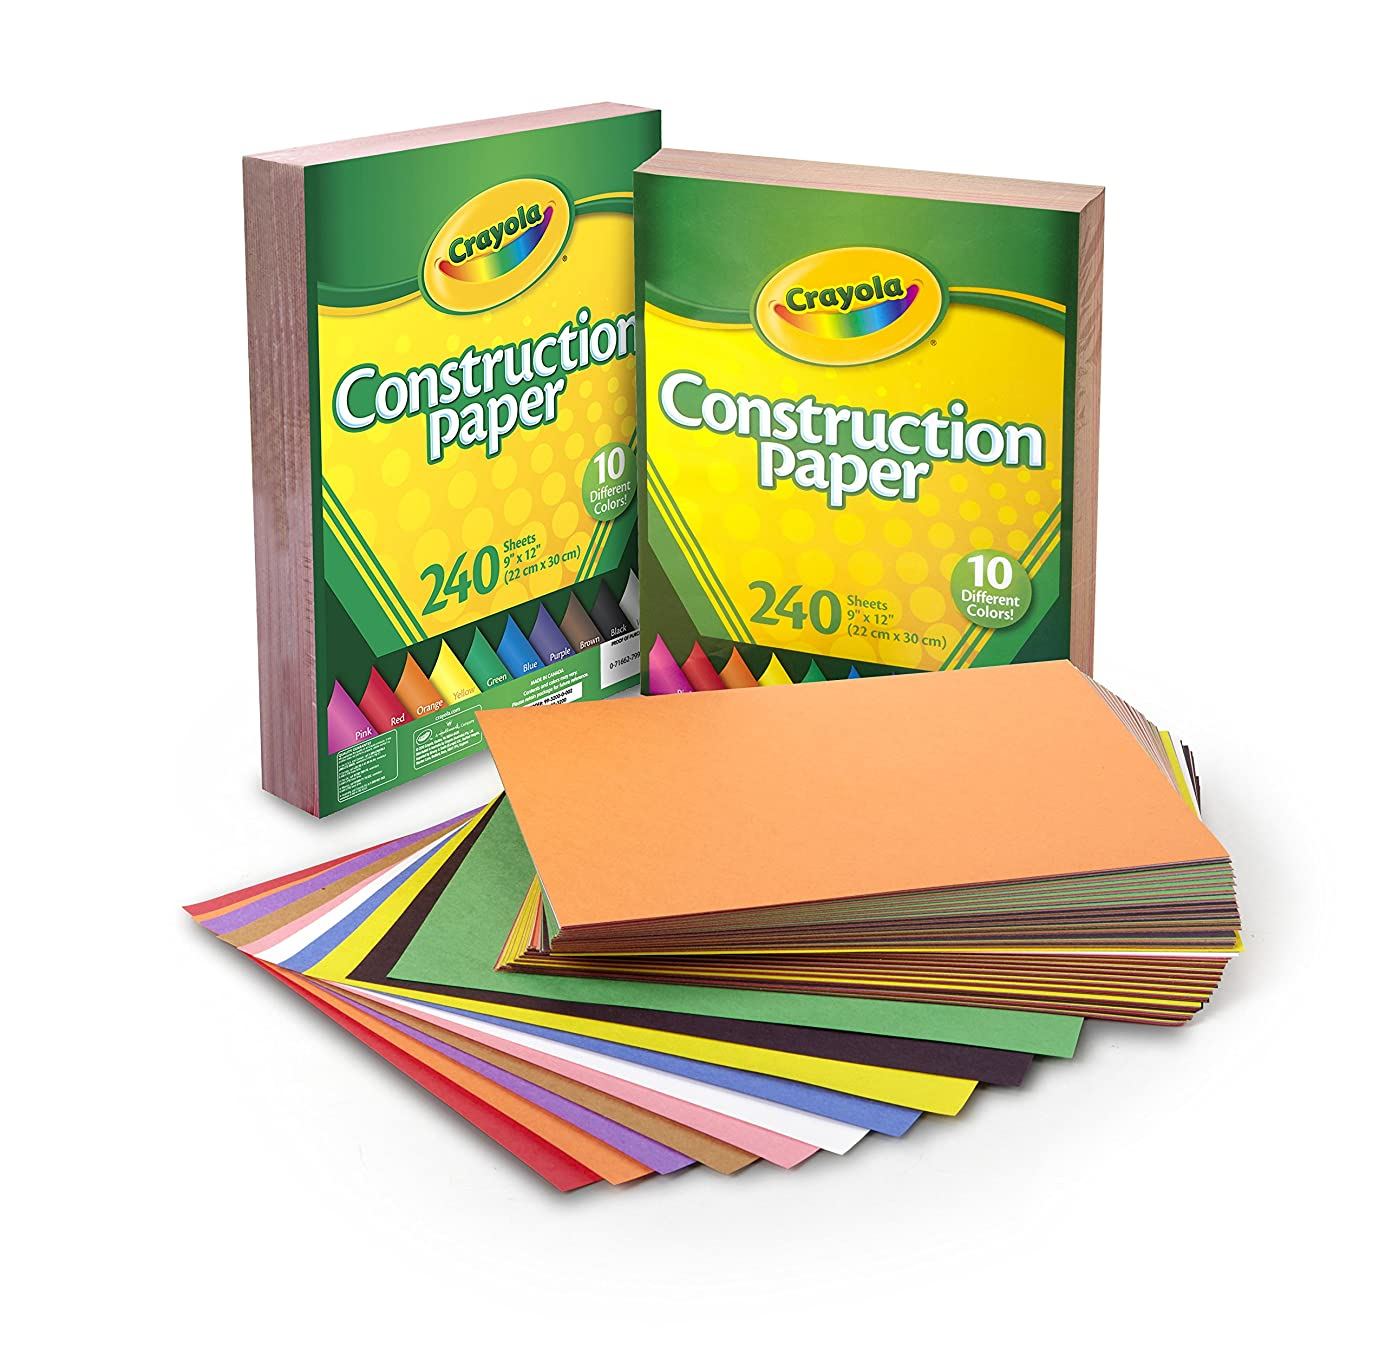 Crayola Construction Paper Bulk, 10 Colors, Great For Crafts, 480Count izq3894695